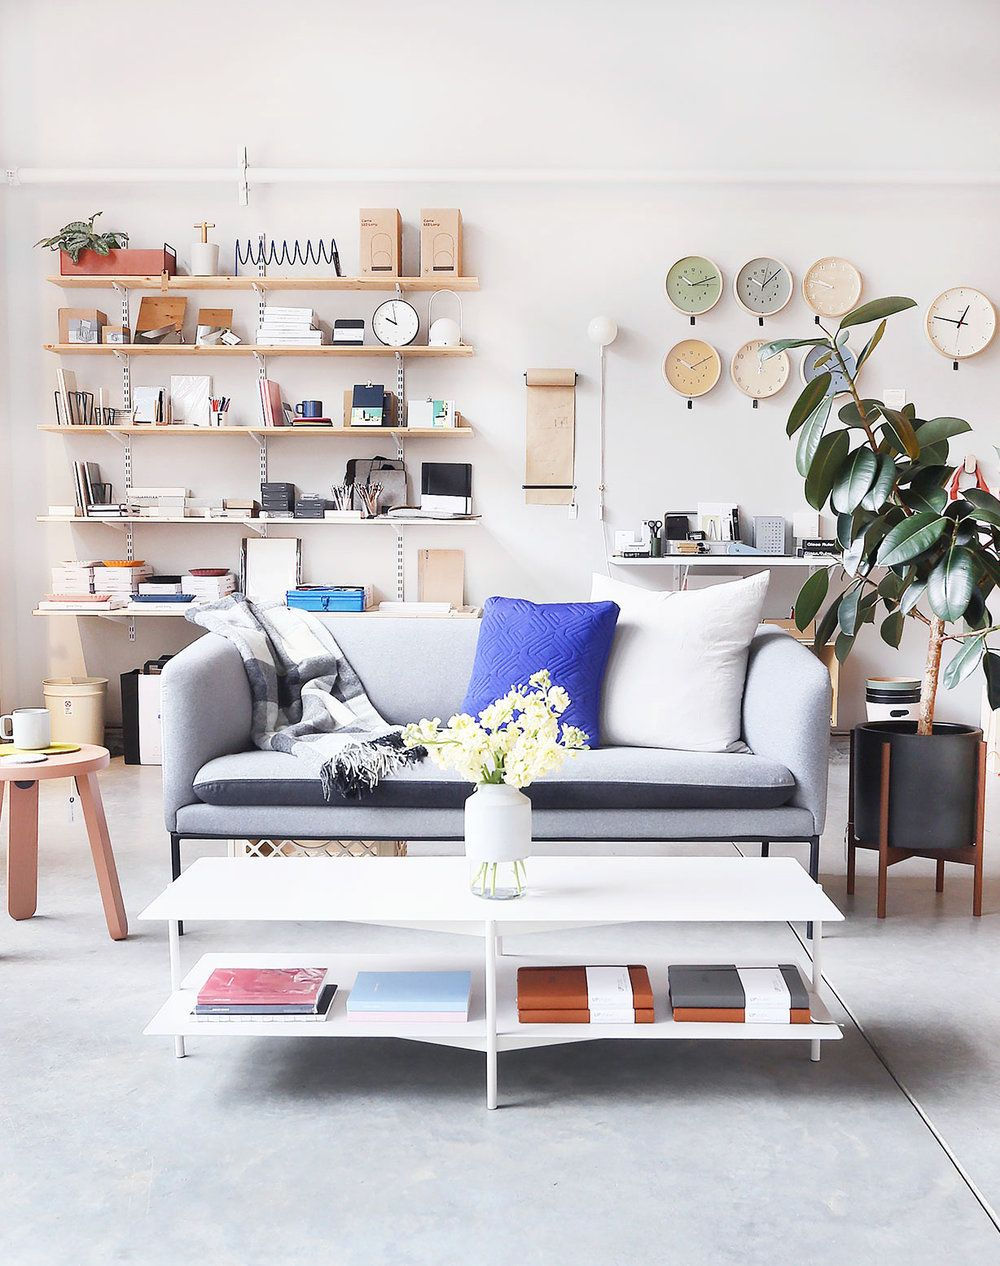 Neatly stacked and organized home accessories and furniture with a scandinavian modern minimalist style these accessories can be found at port of raleigh